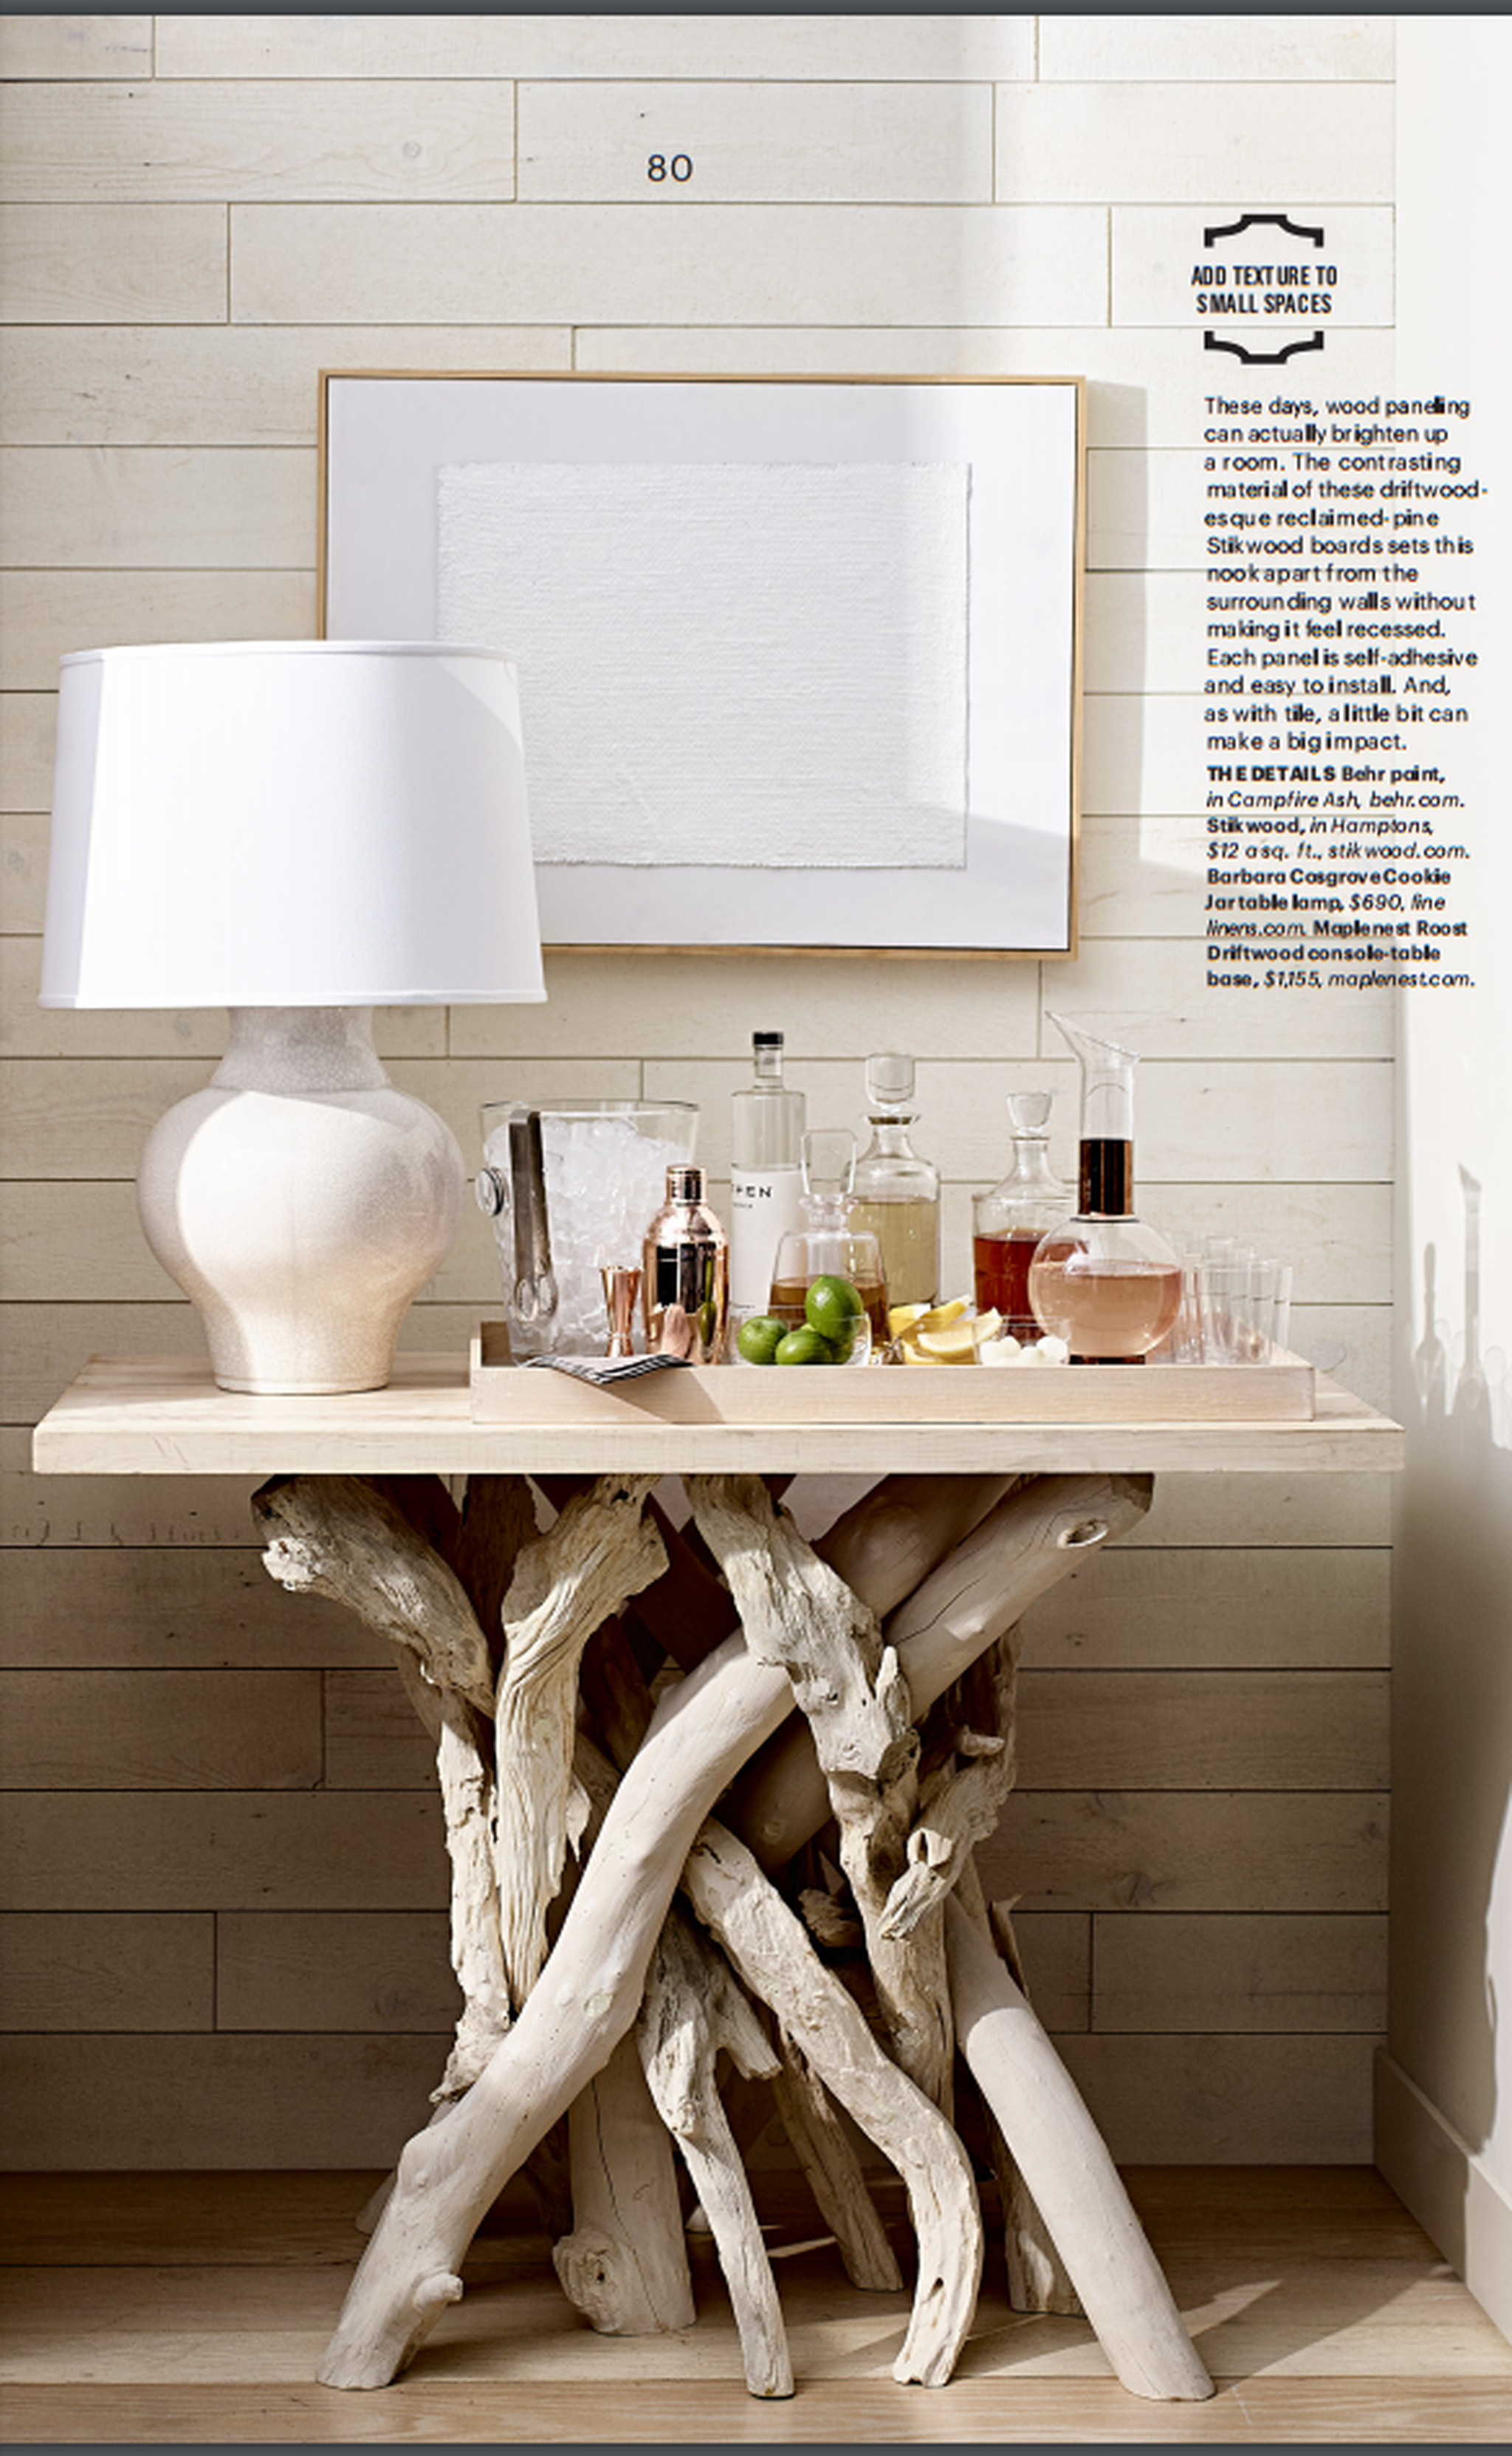 Roost driftwood table bases adirondack ideas pinterest roost driftwood table bases geotapseo Images